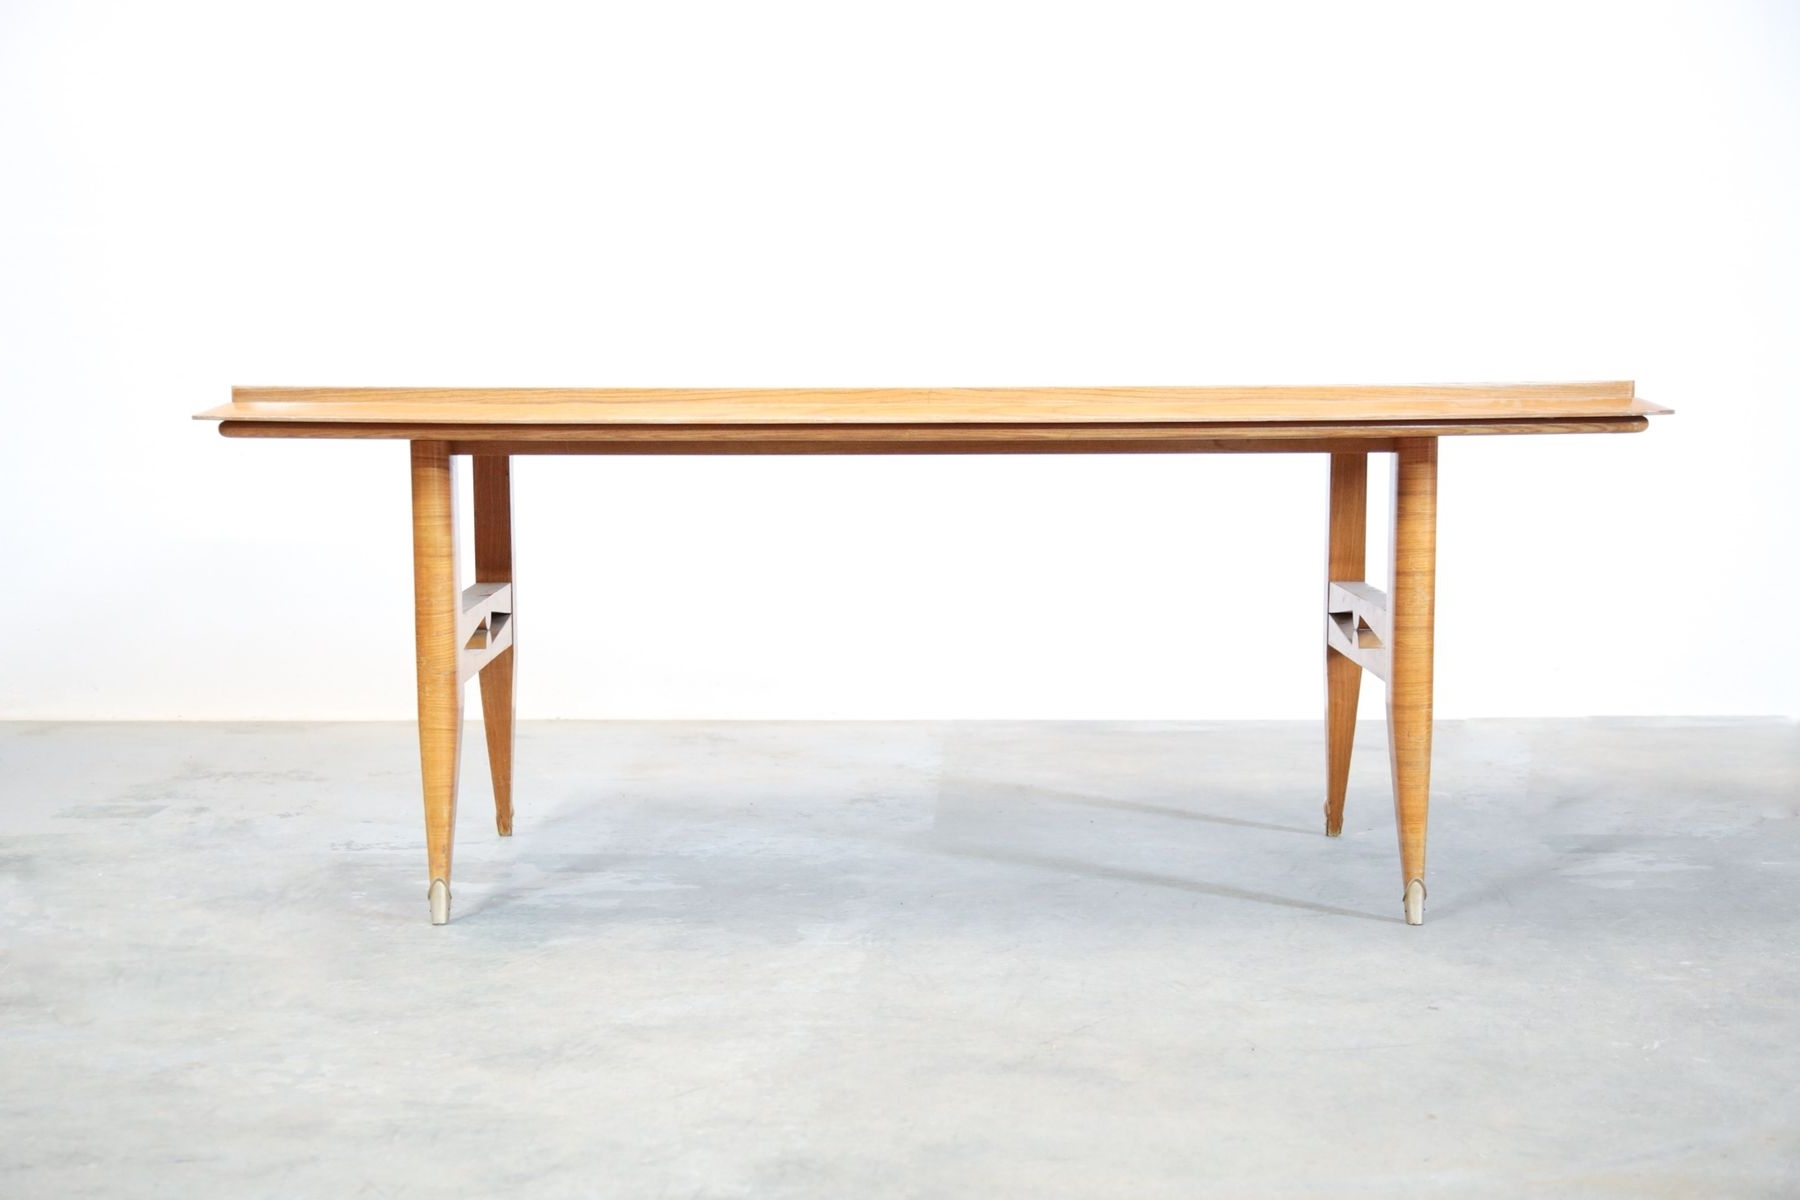 2018 Vintage Italian Dining Table, 1960S For Sale At Pamono Within Italian Dining Tables (View 1 of 25)